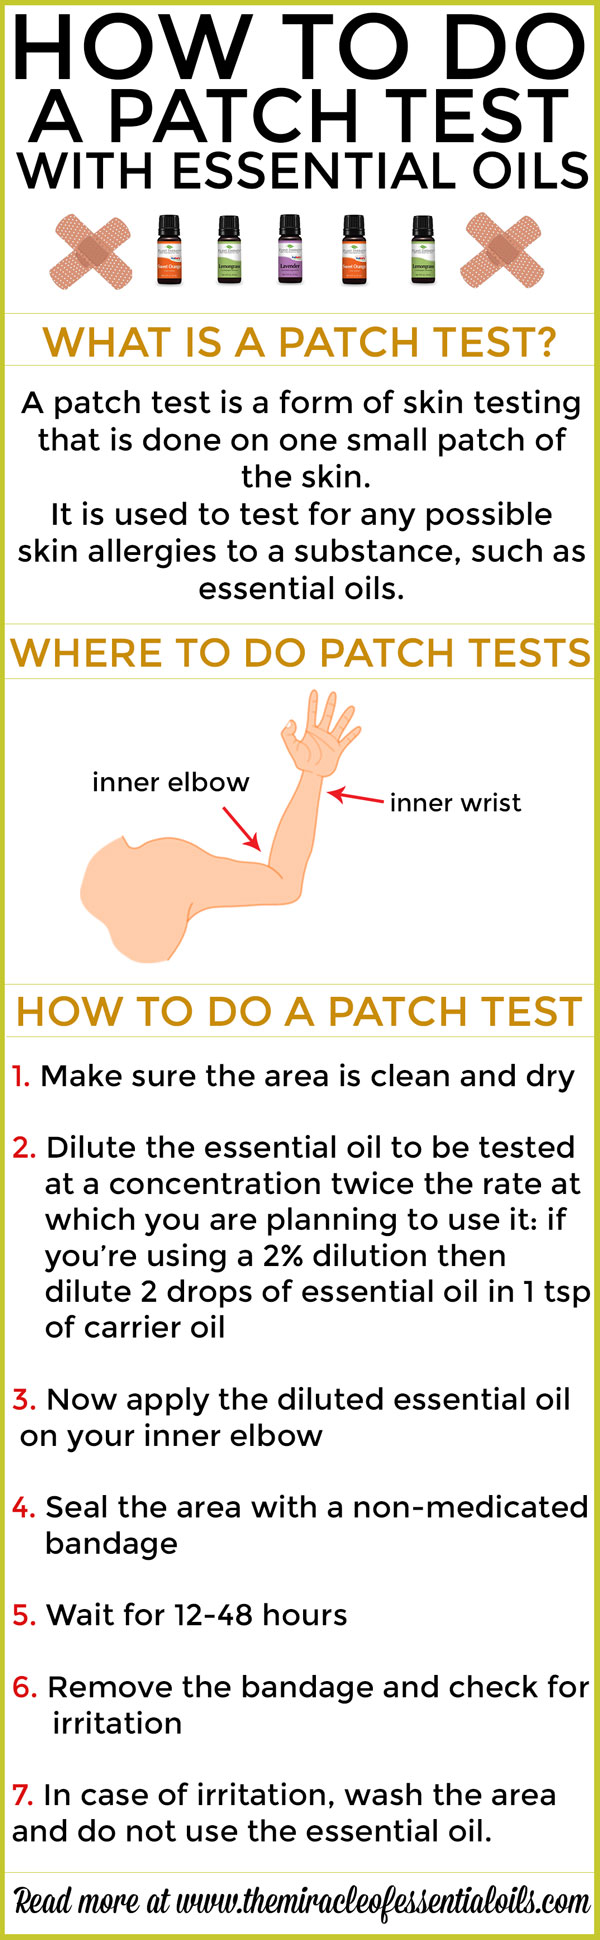 How to Perform a Patch Test